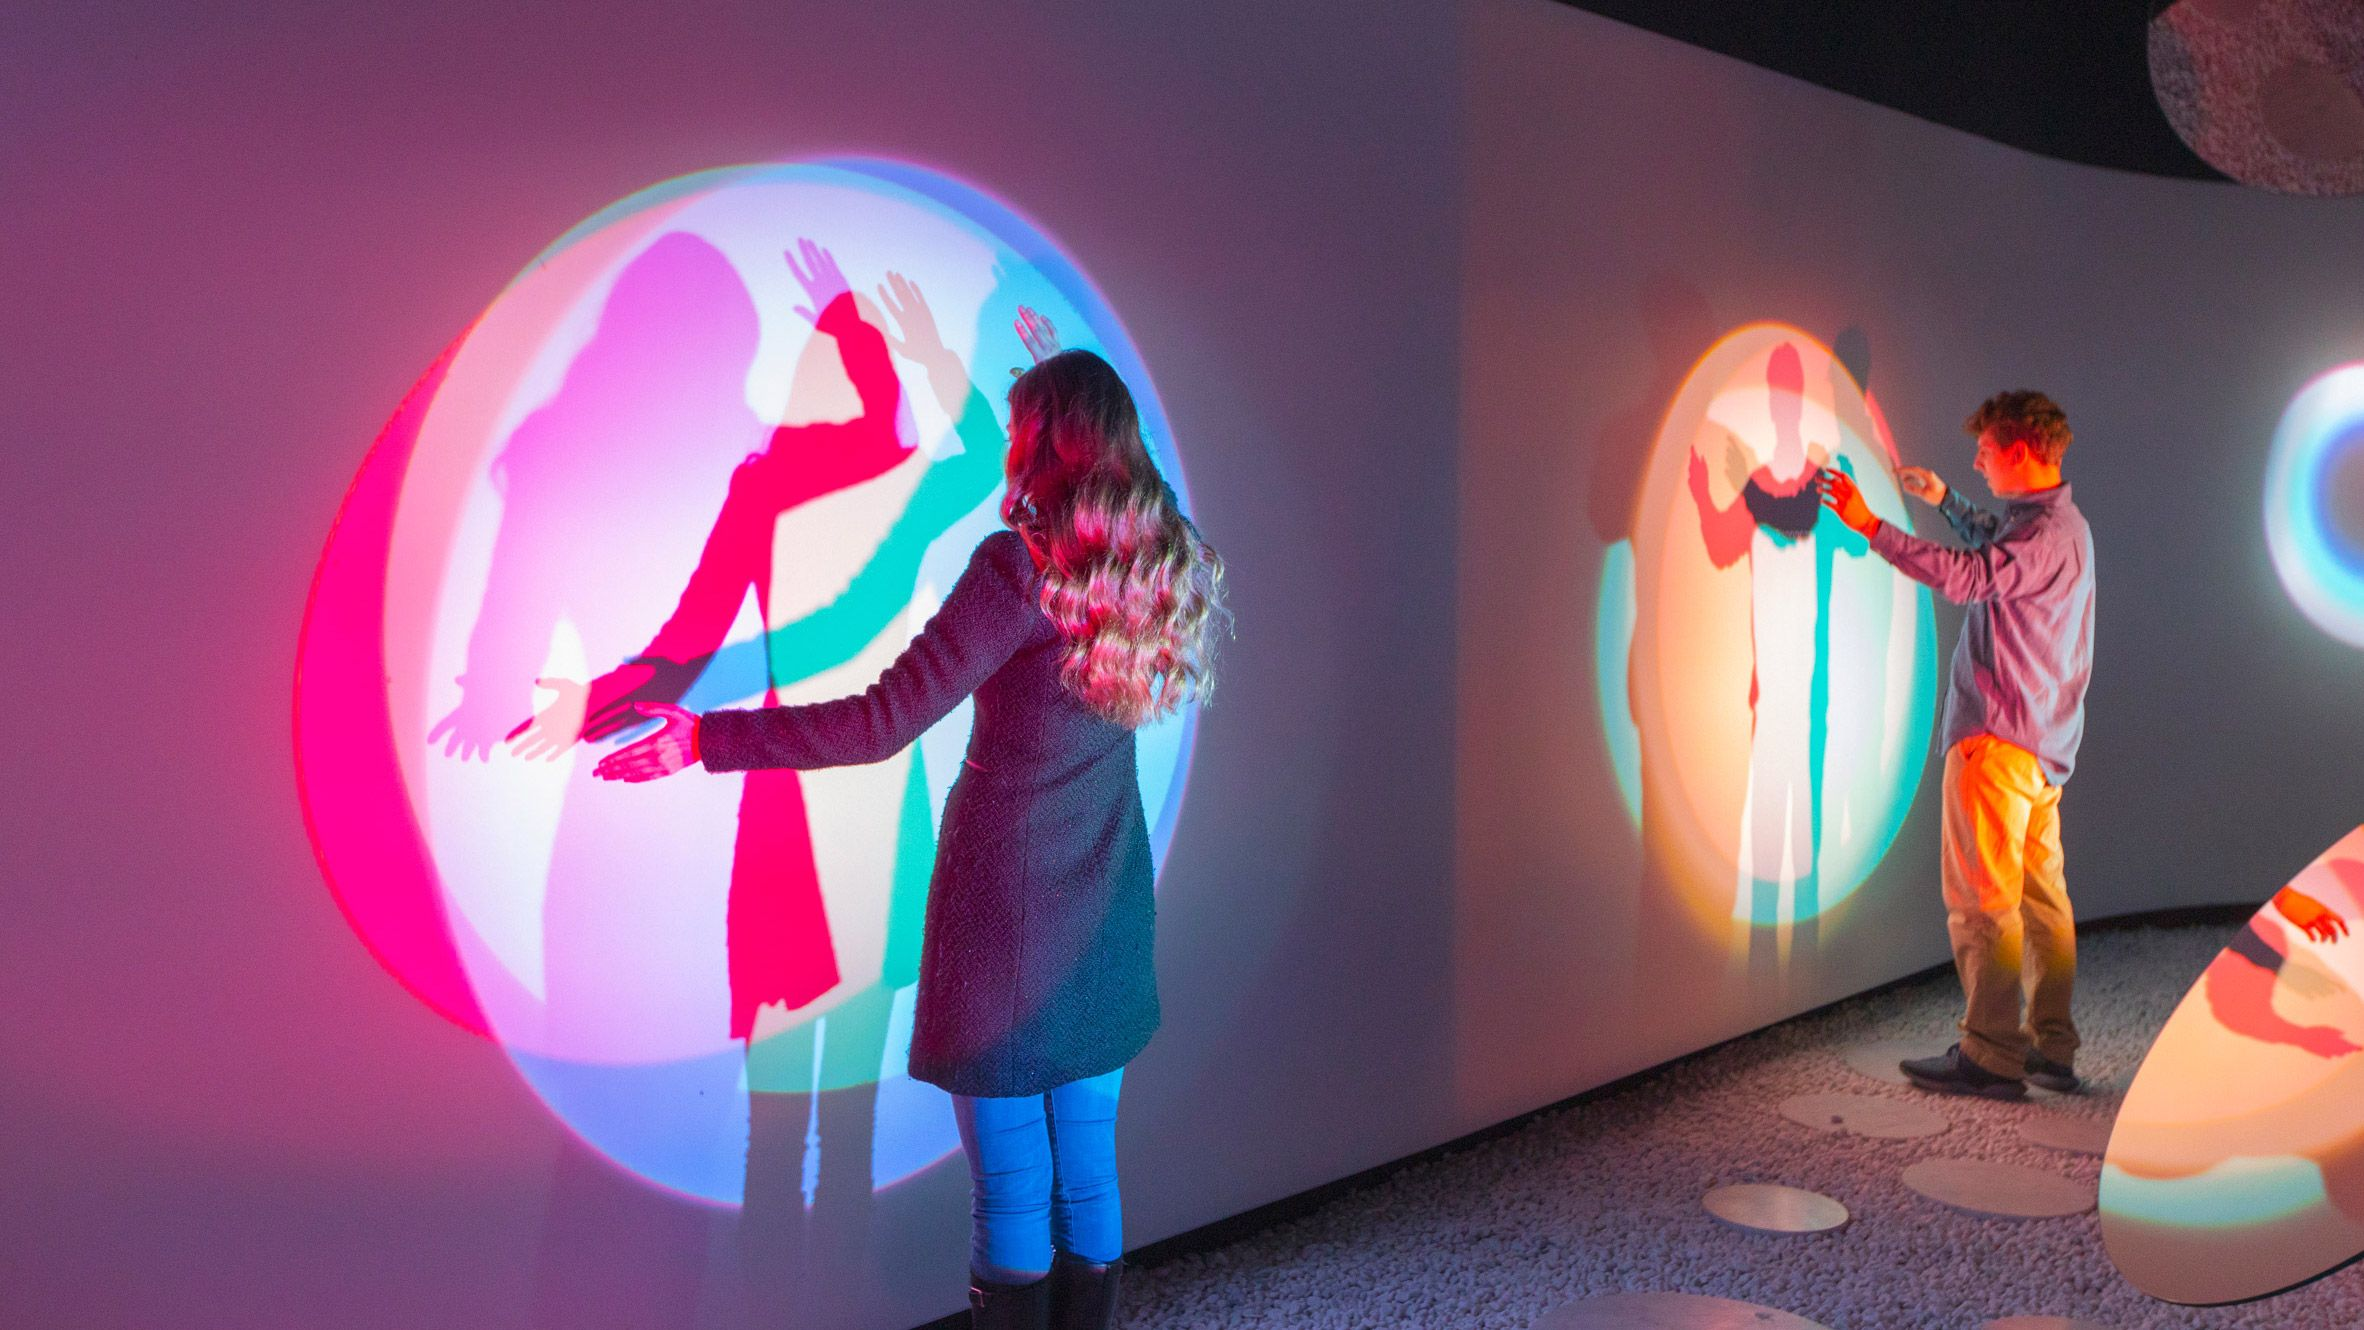 Samsung has created an interactive installation, called Resonance, that allows visitors to create art by breathing, talking and moving.